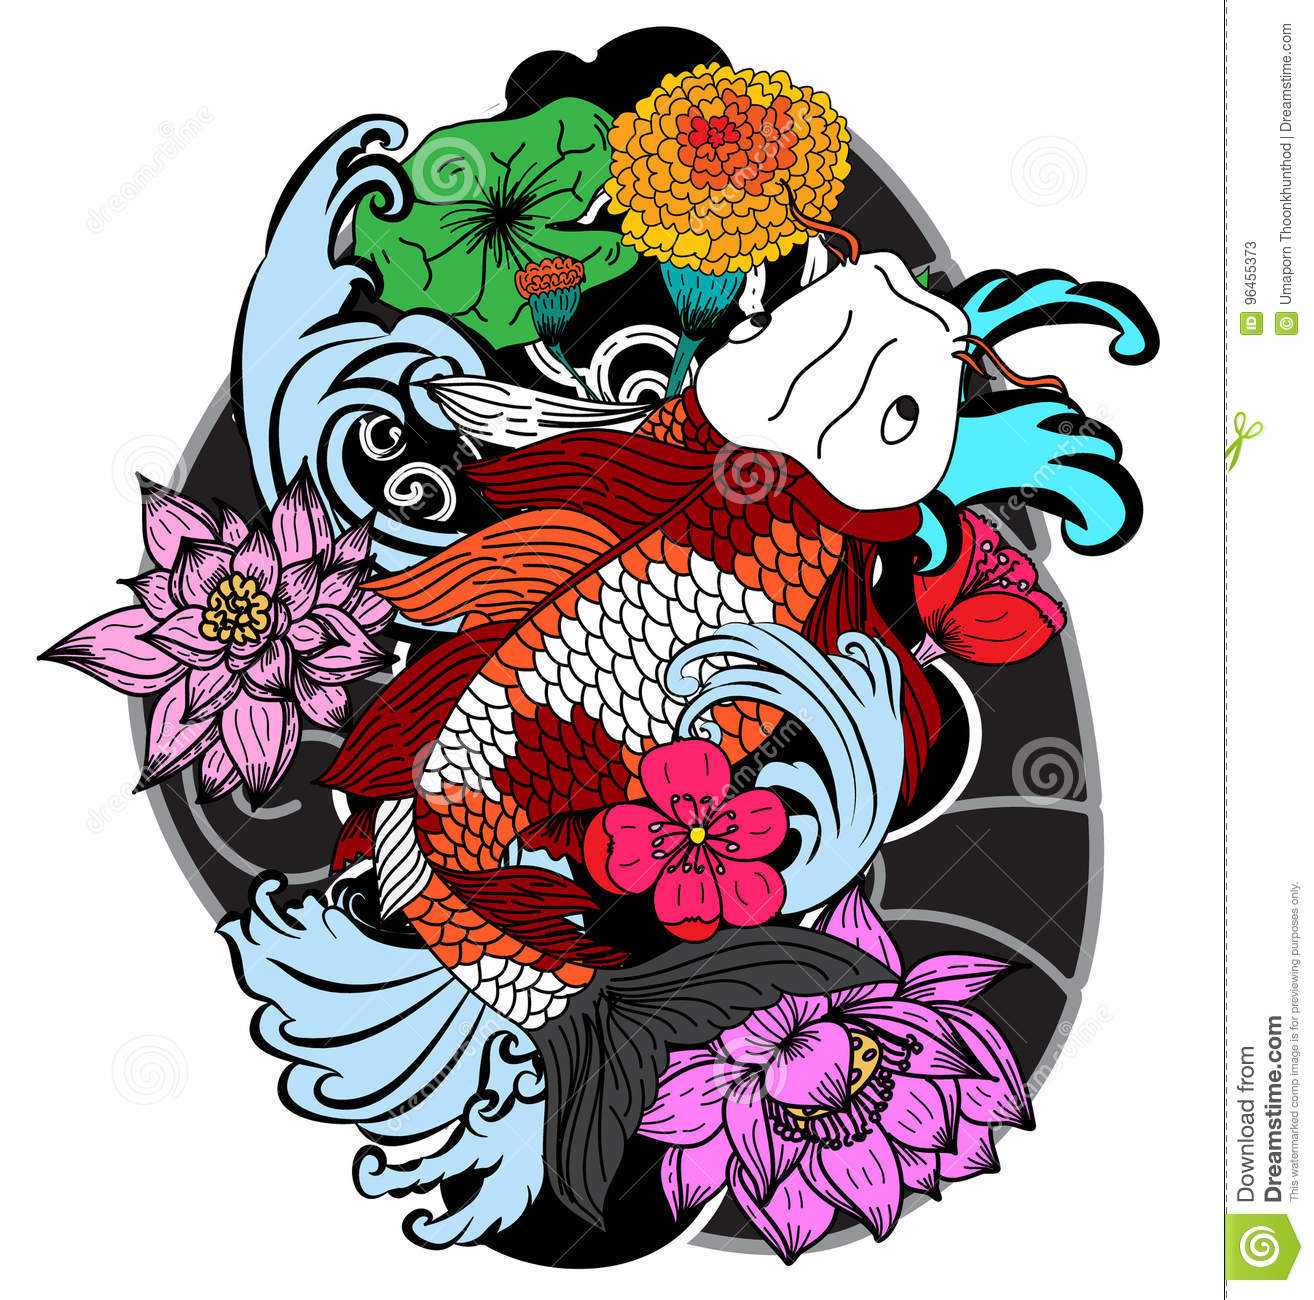 Colorful Koi Fish And Flower Stock Vector - Illustration of japanese ...